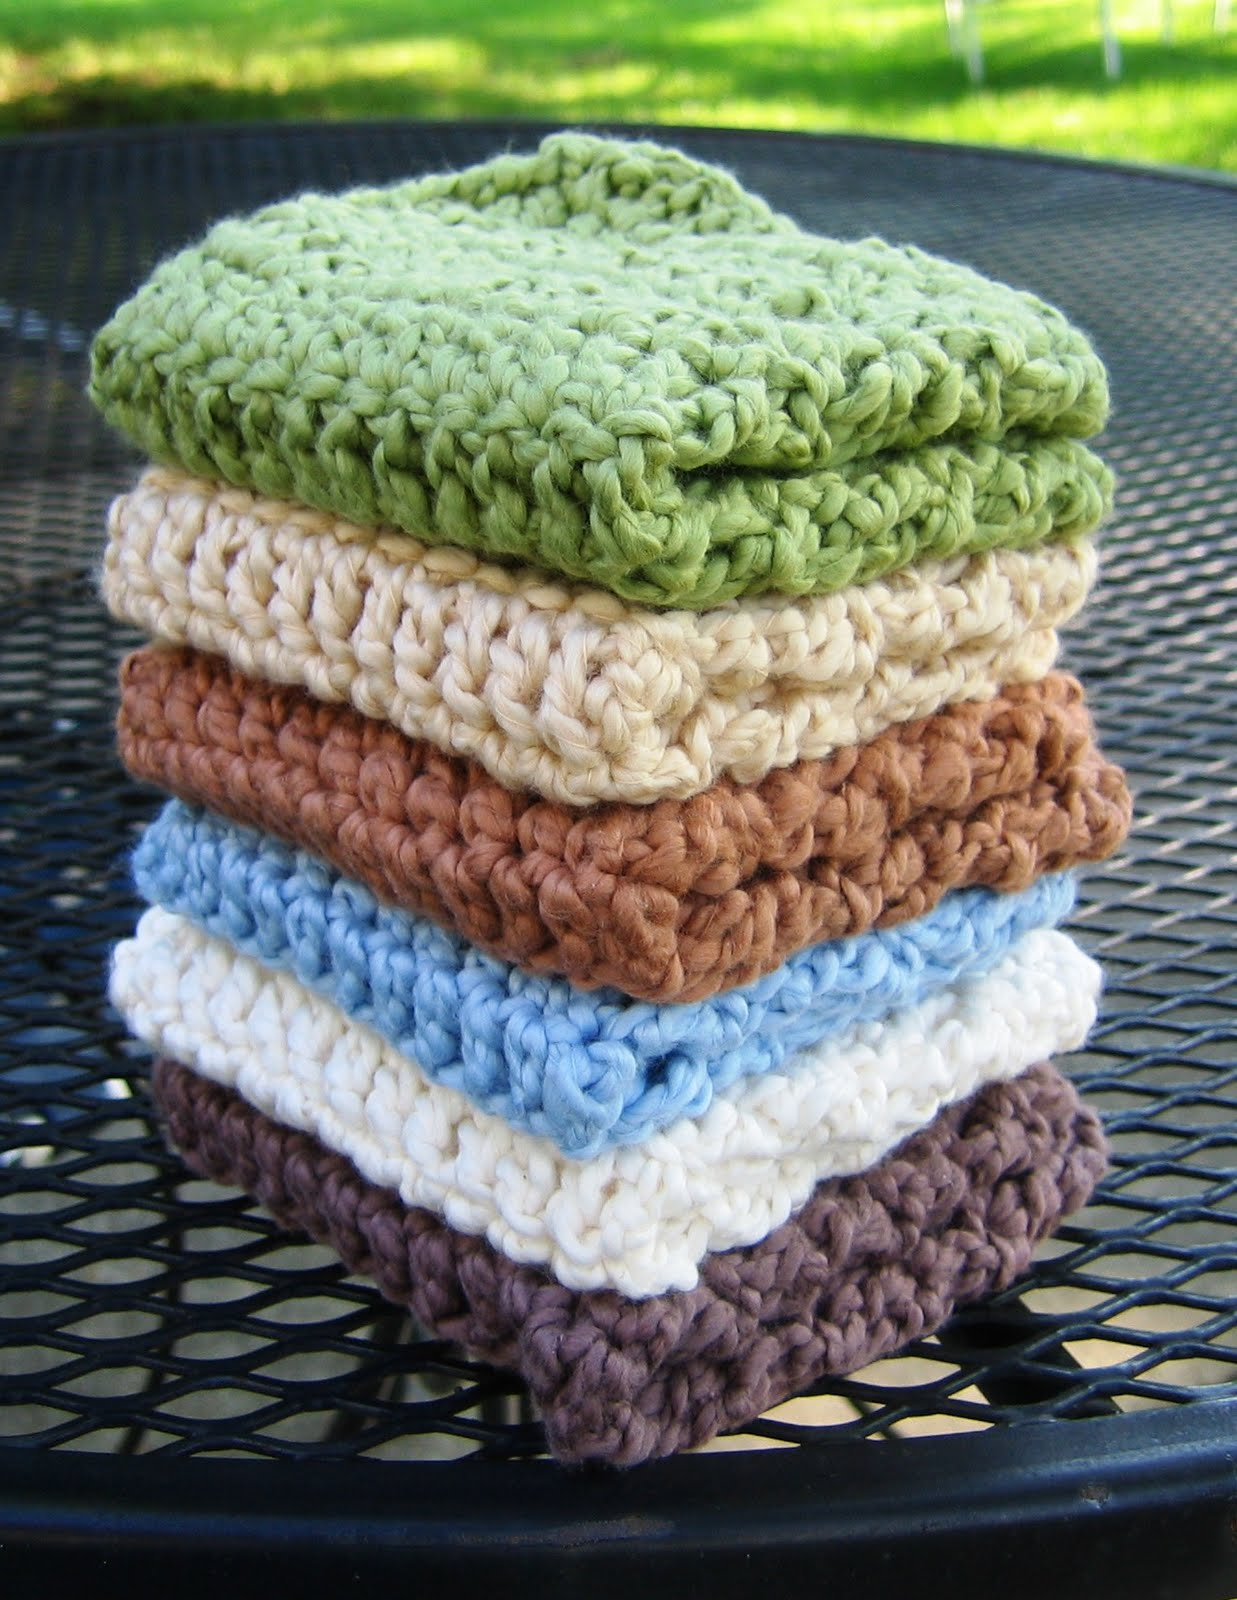 Handmade By Annabelle: 7 Easy Steps to Make a Crochet Washcloth ...